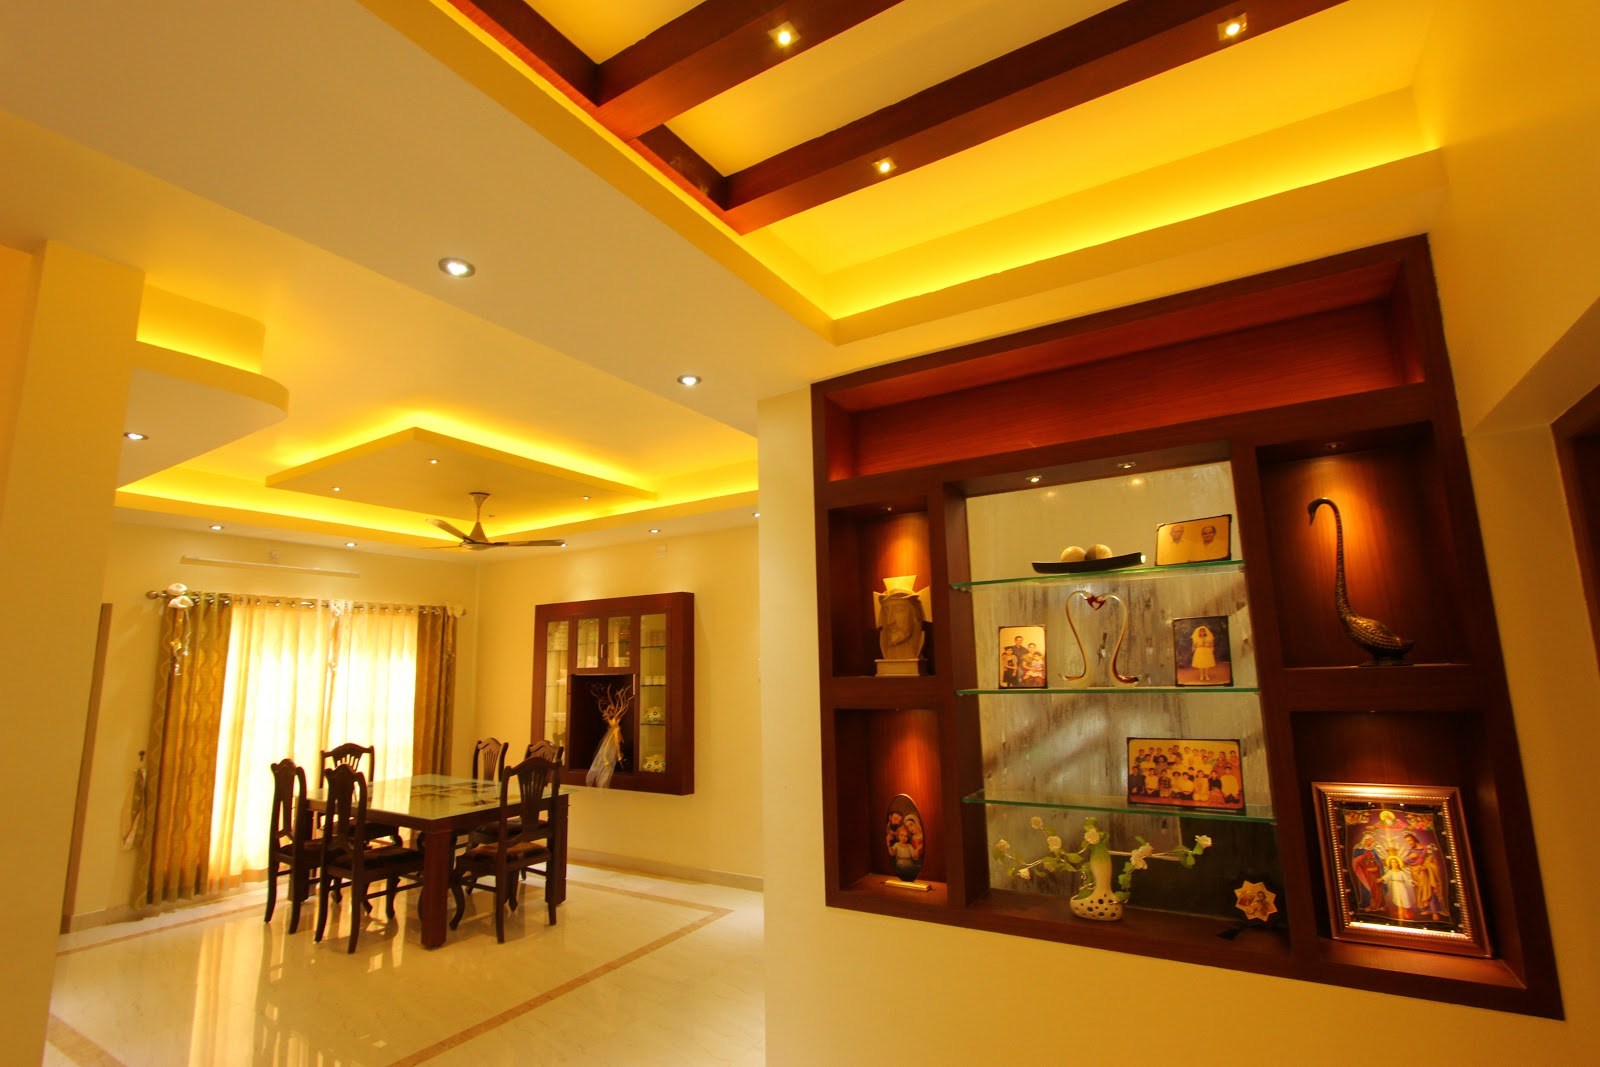 Shilpakala interiors award winning home interior design for Home decorating company